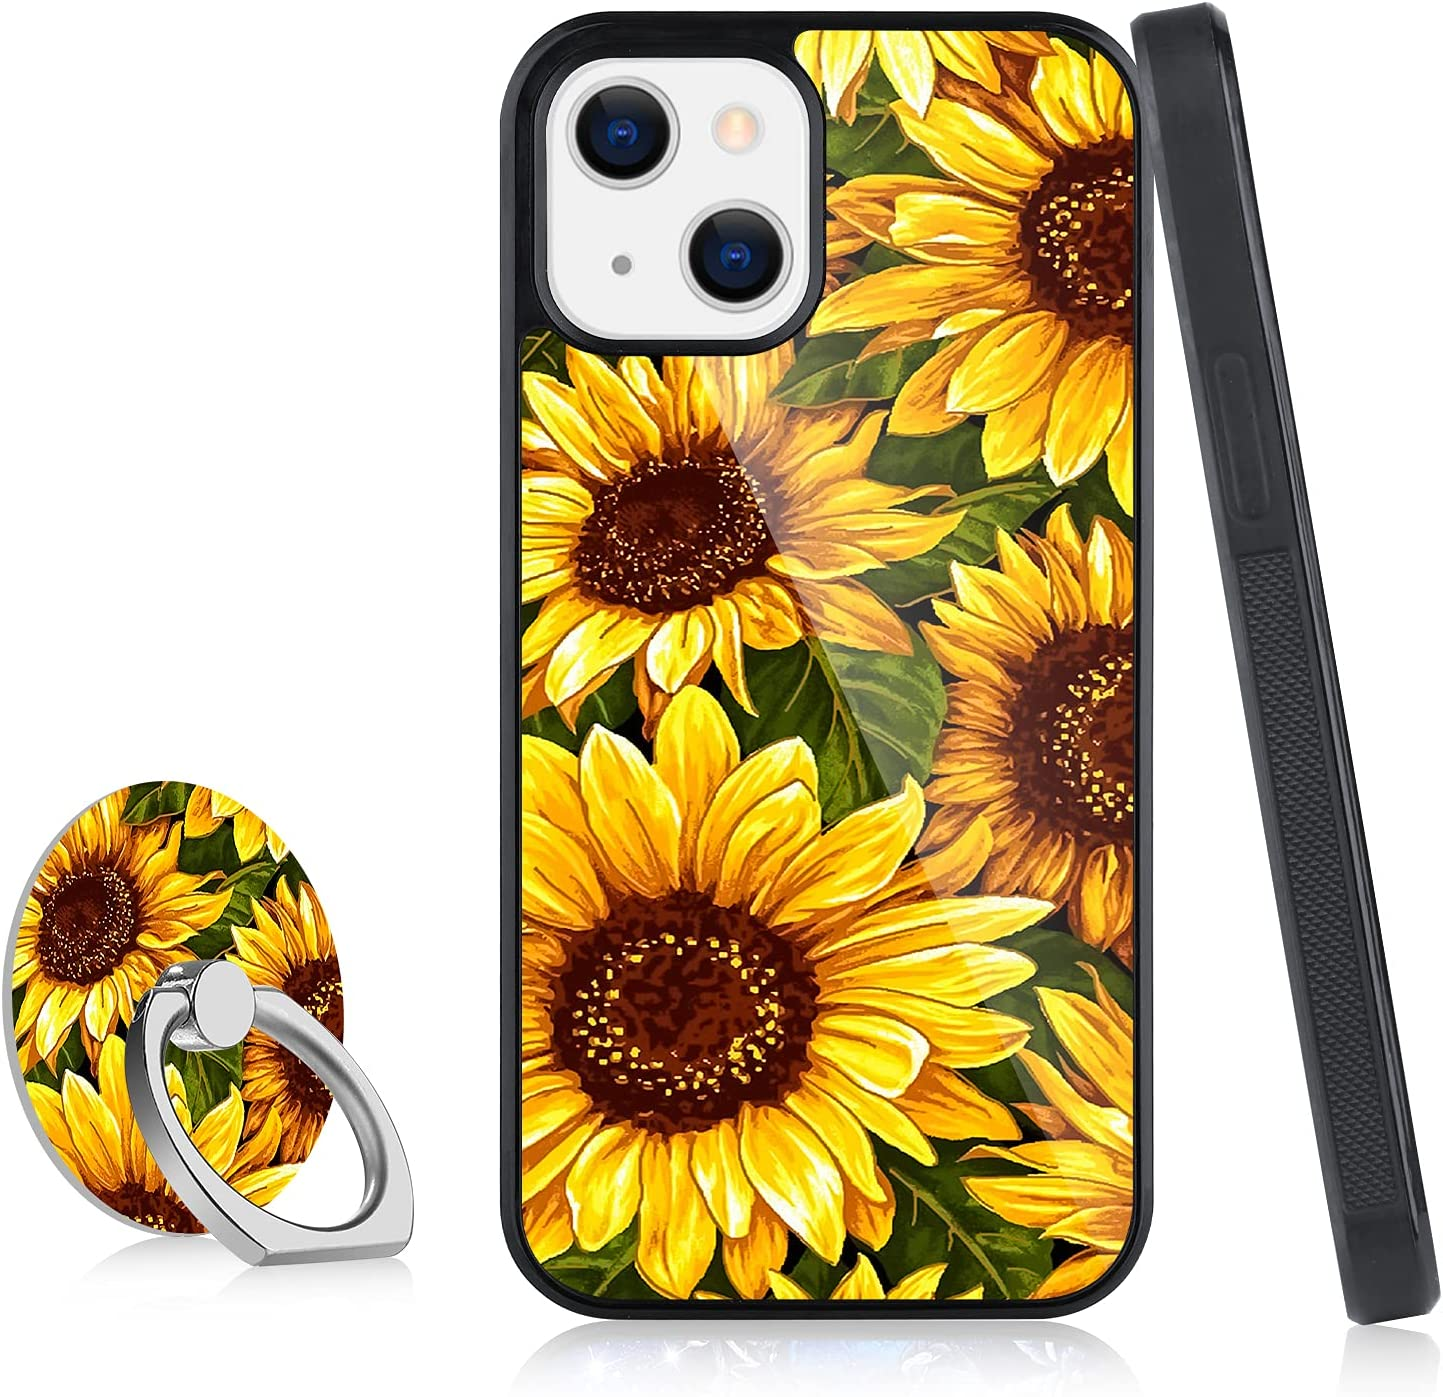 OOK Designed for iPhone 13 Pro Max Case for Women Girls Flower Floral Sunflower Blossom Cute Design with Ring Holder Stand Kickstand Slim Protective Hard Back Bumper Cover Case